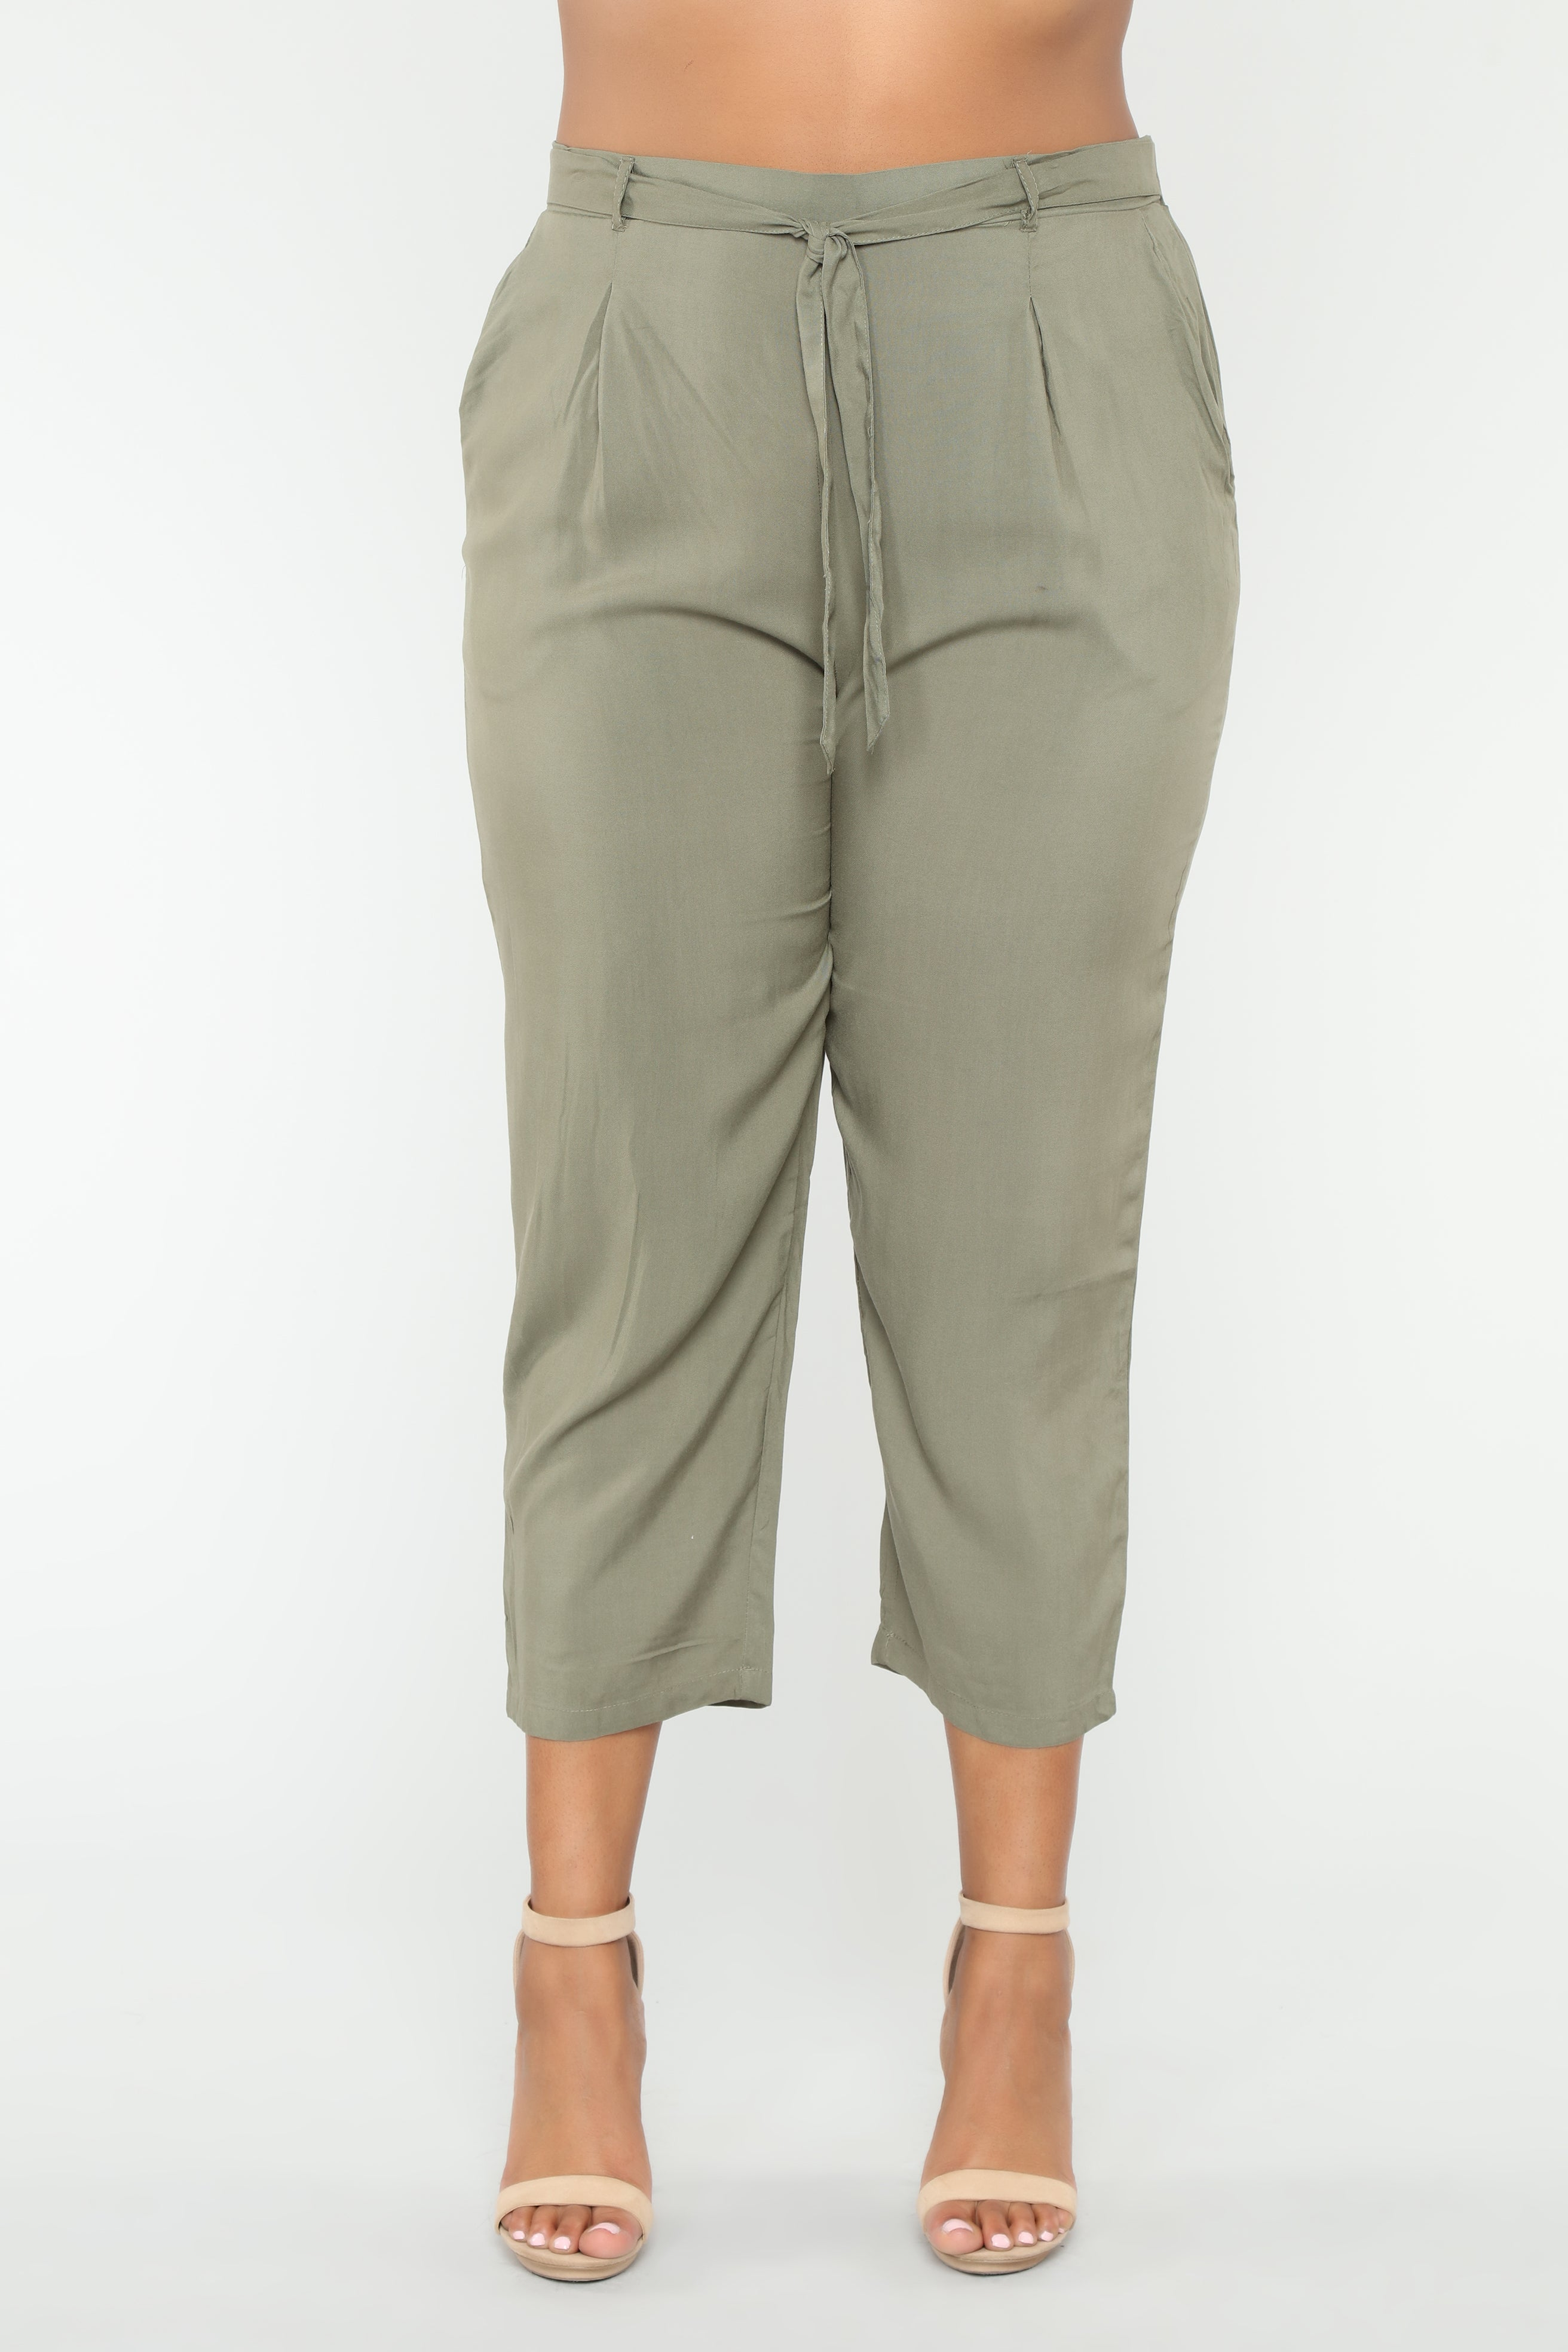 d680dadde8e Work It Waist Tie Pants - Olive